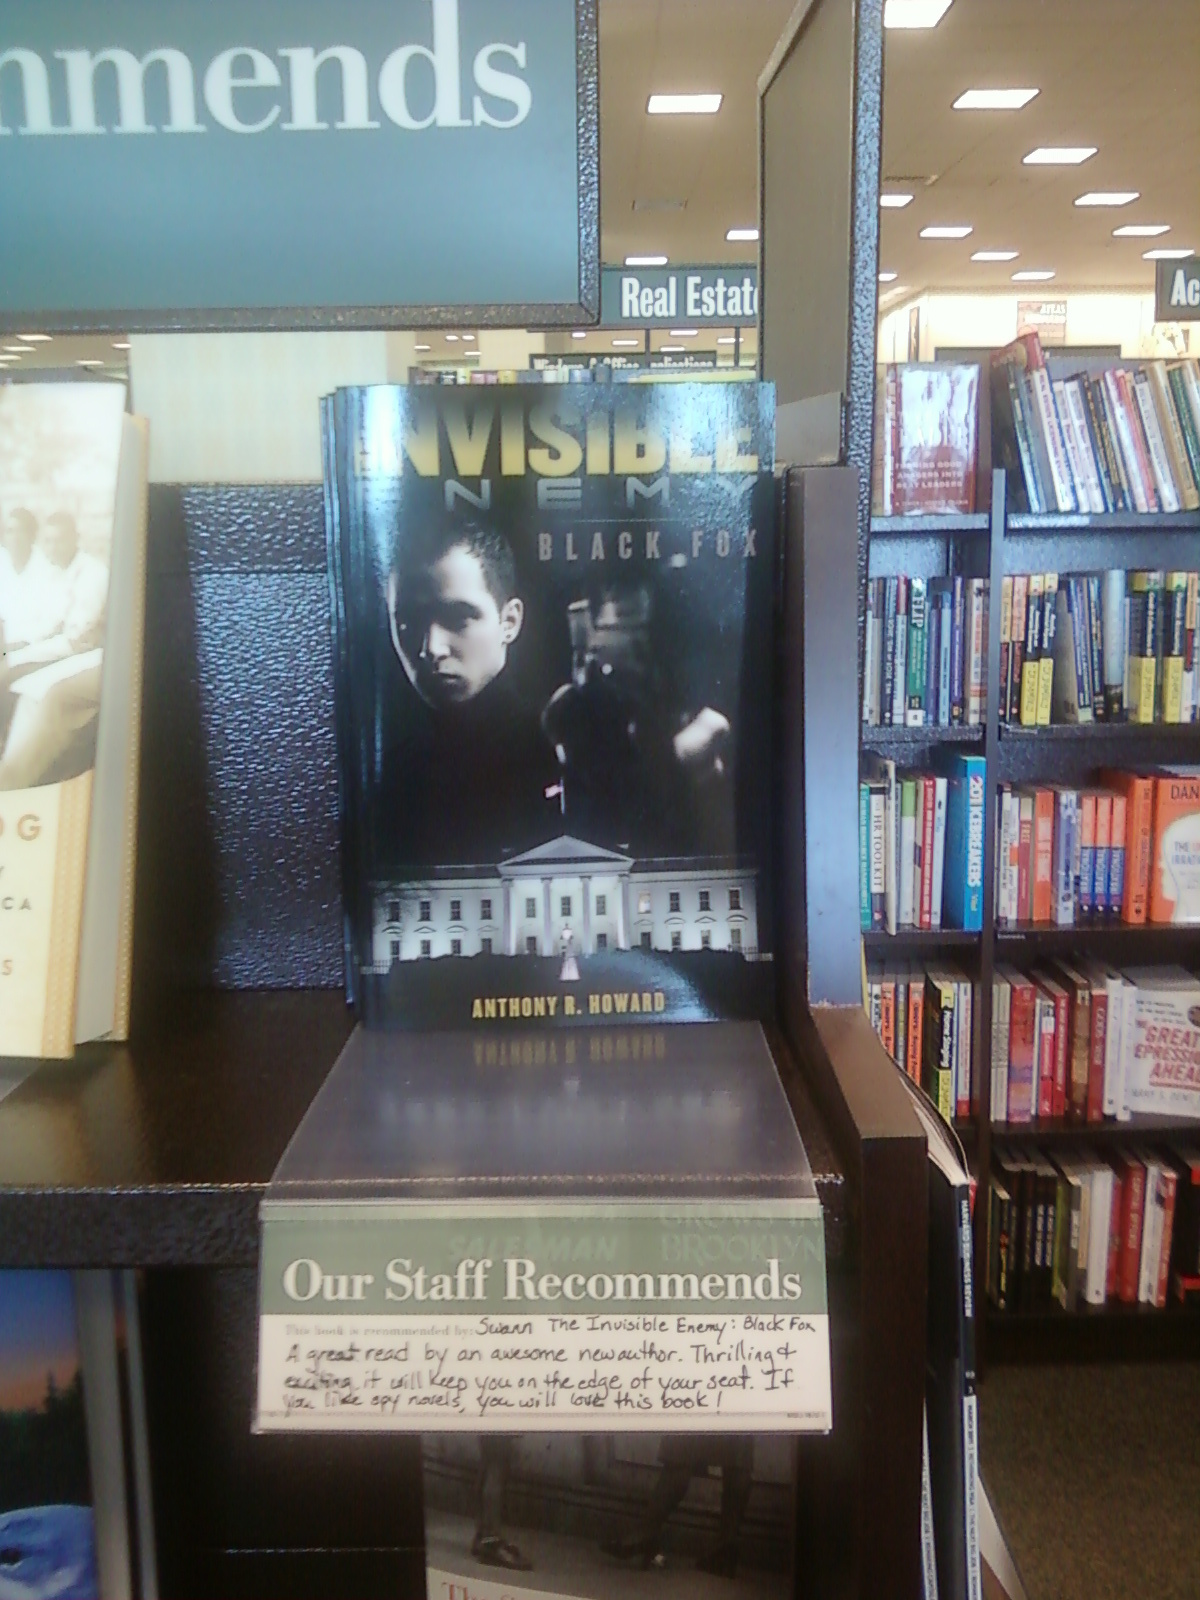 Barnes and nobles staff recommendation